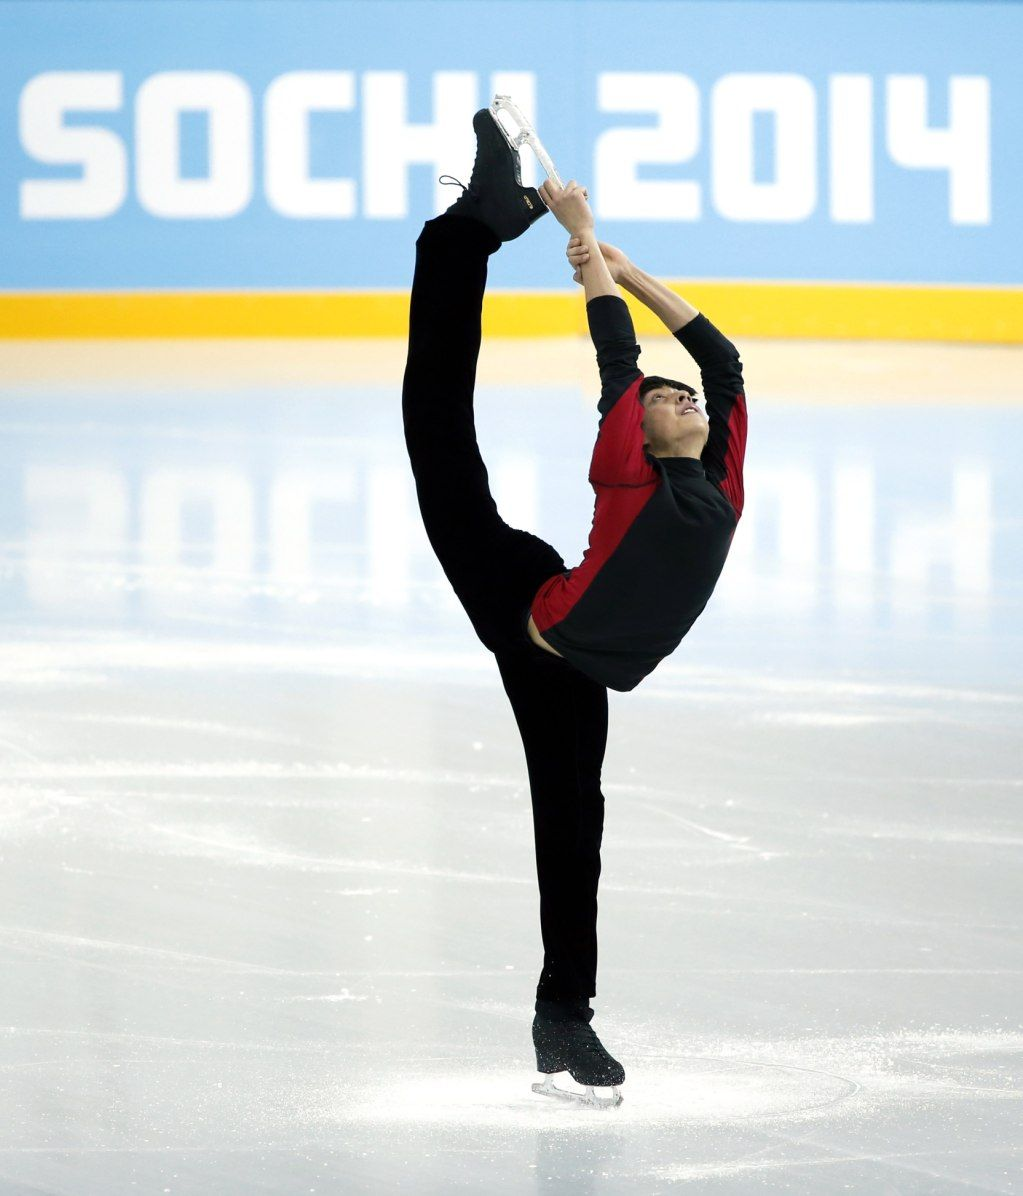 Martinez of the Philippines skates during a figure skating